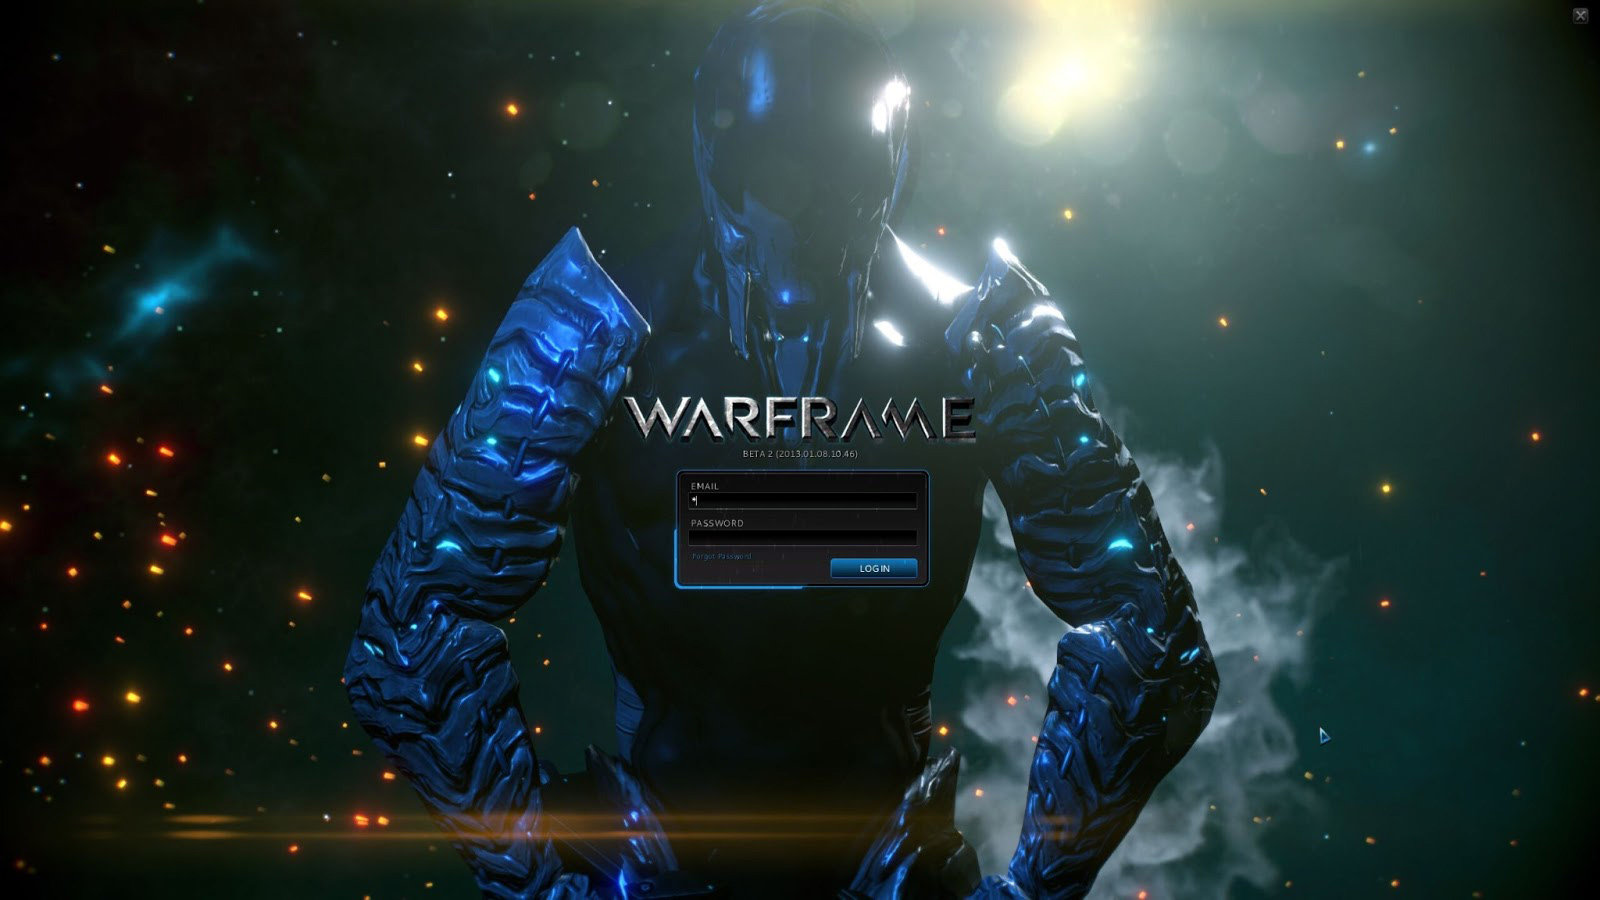 worldfungamesru_Warframe_01